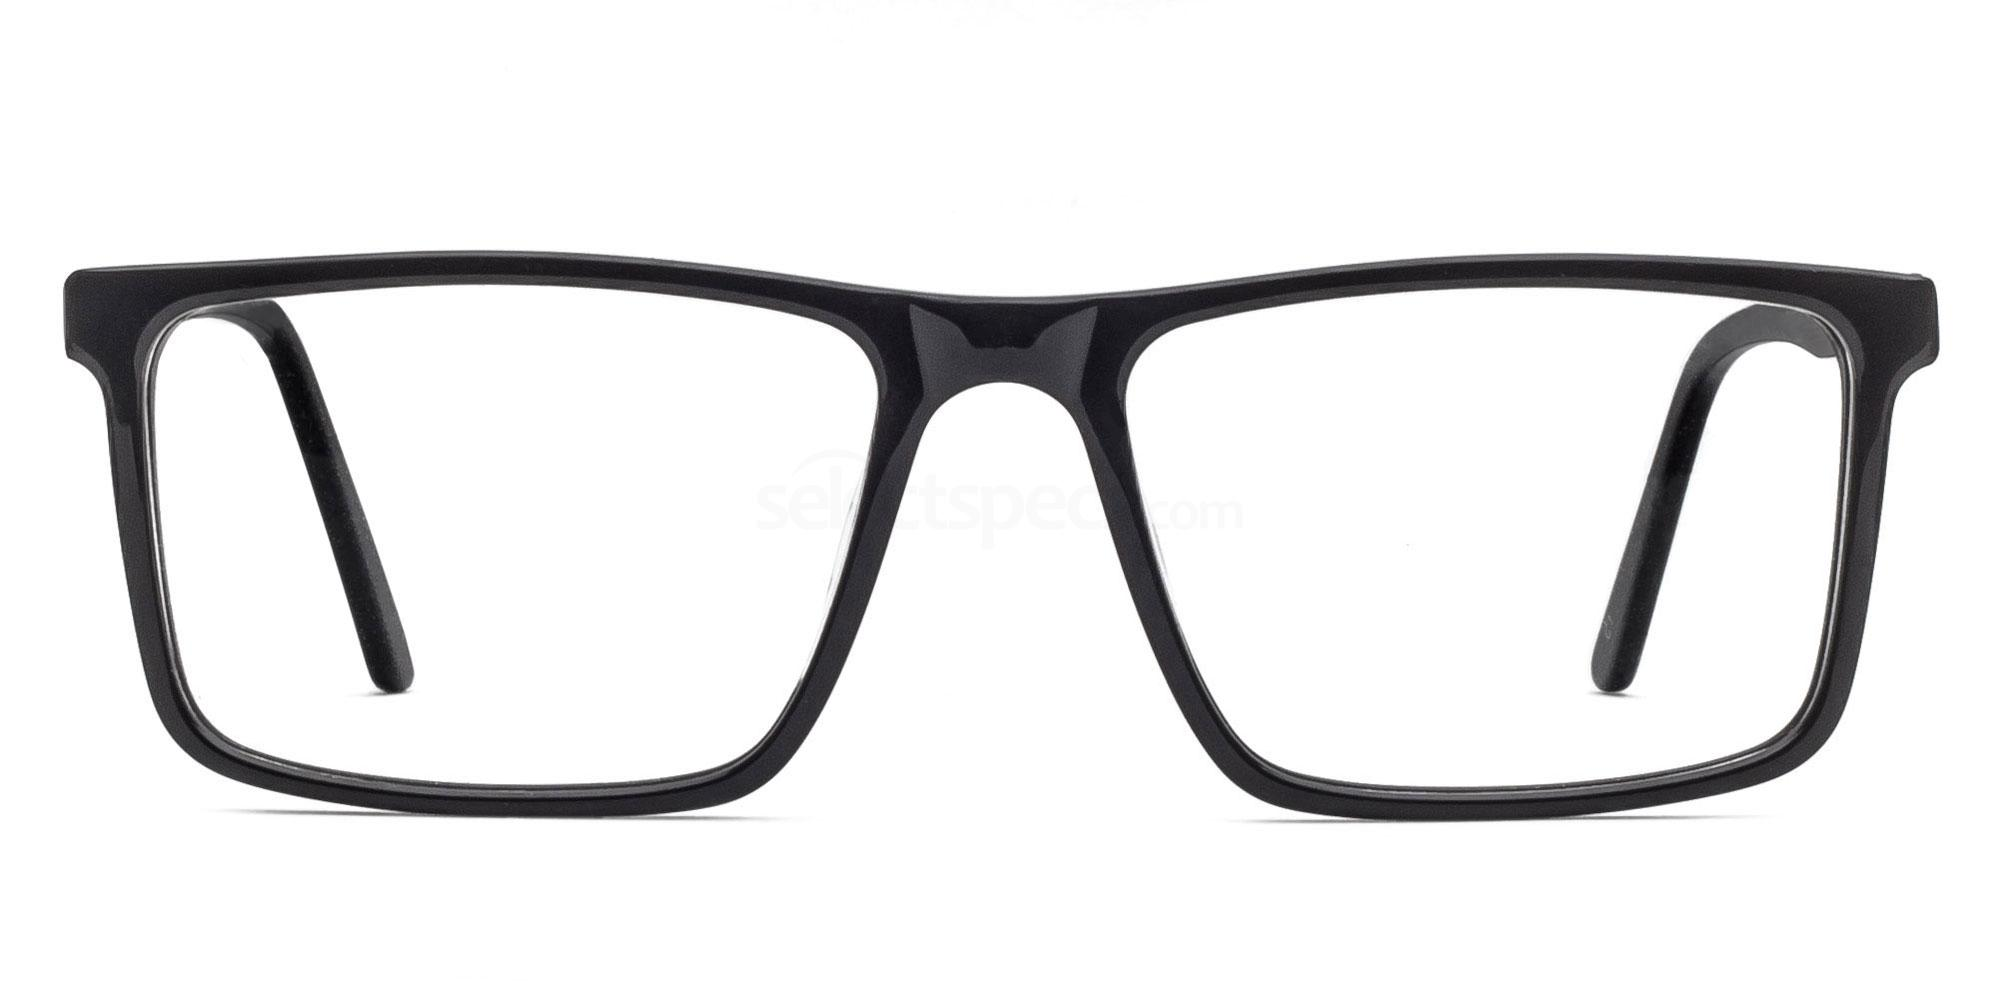 C1 SR17540 Glasses, Savannah